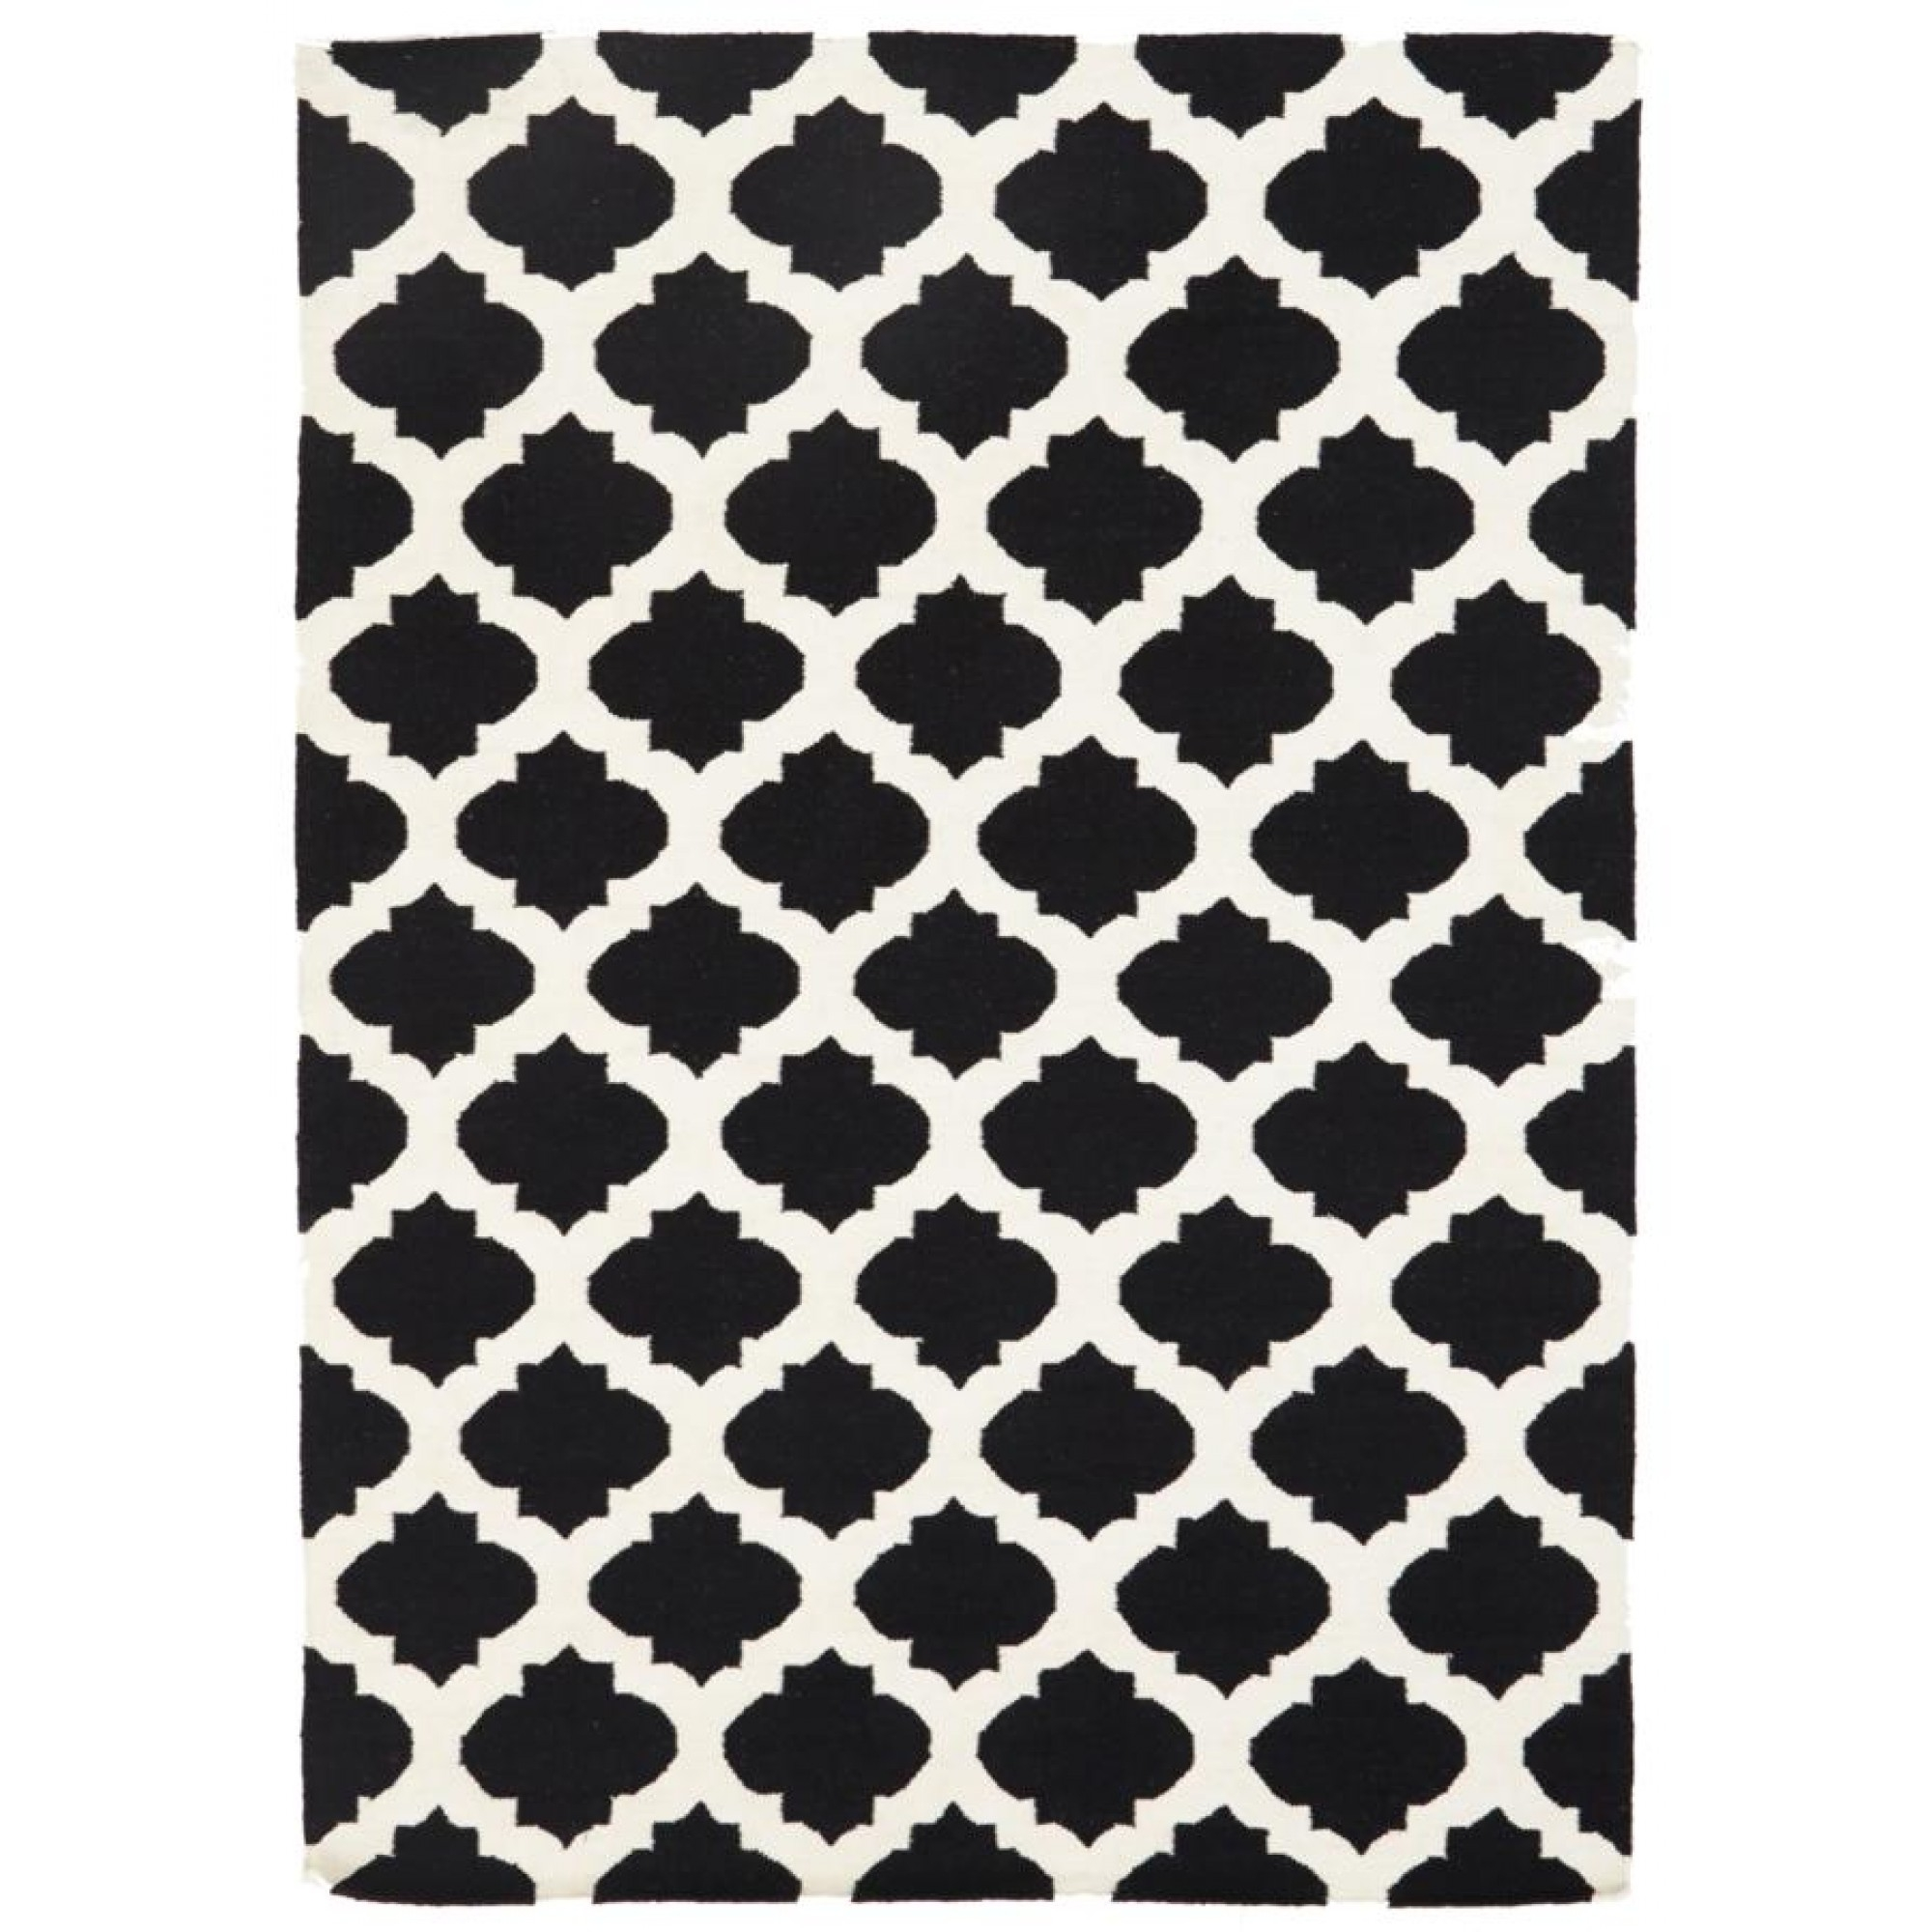 Flatweave Kelim Wool Rugs Free Shipping Australia Wide Also Kids Intended For Hallway Runners Black And White (#6 of 20)